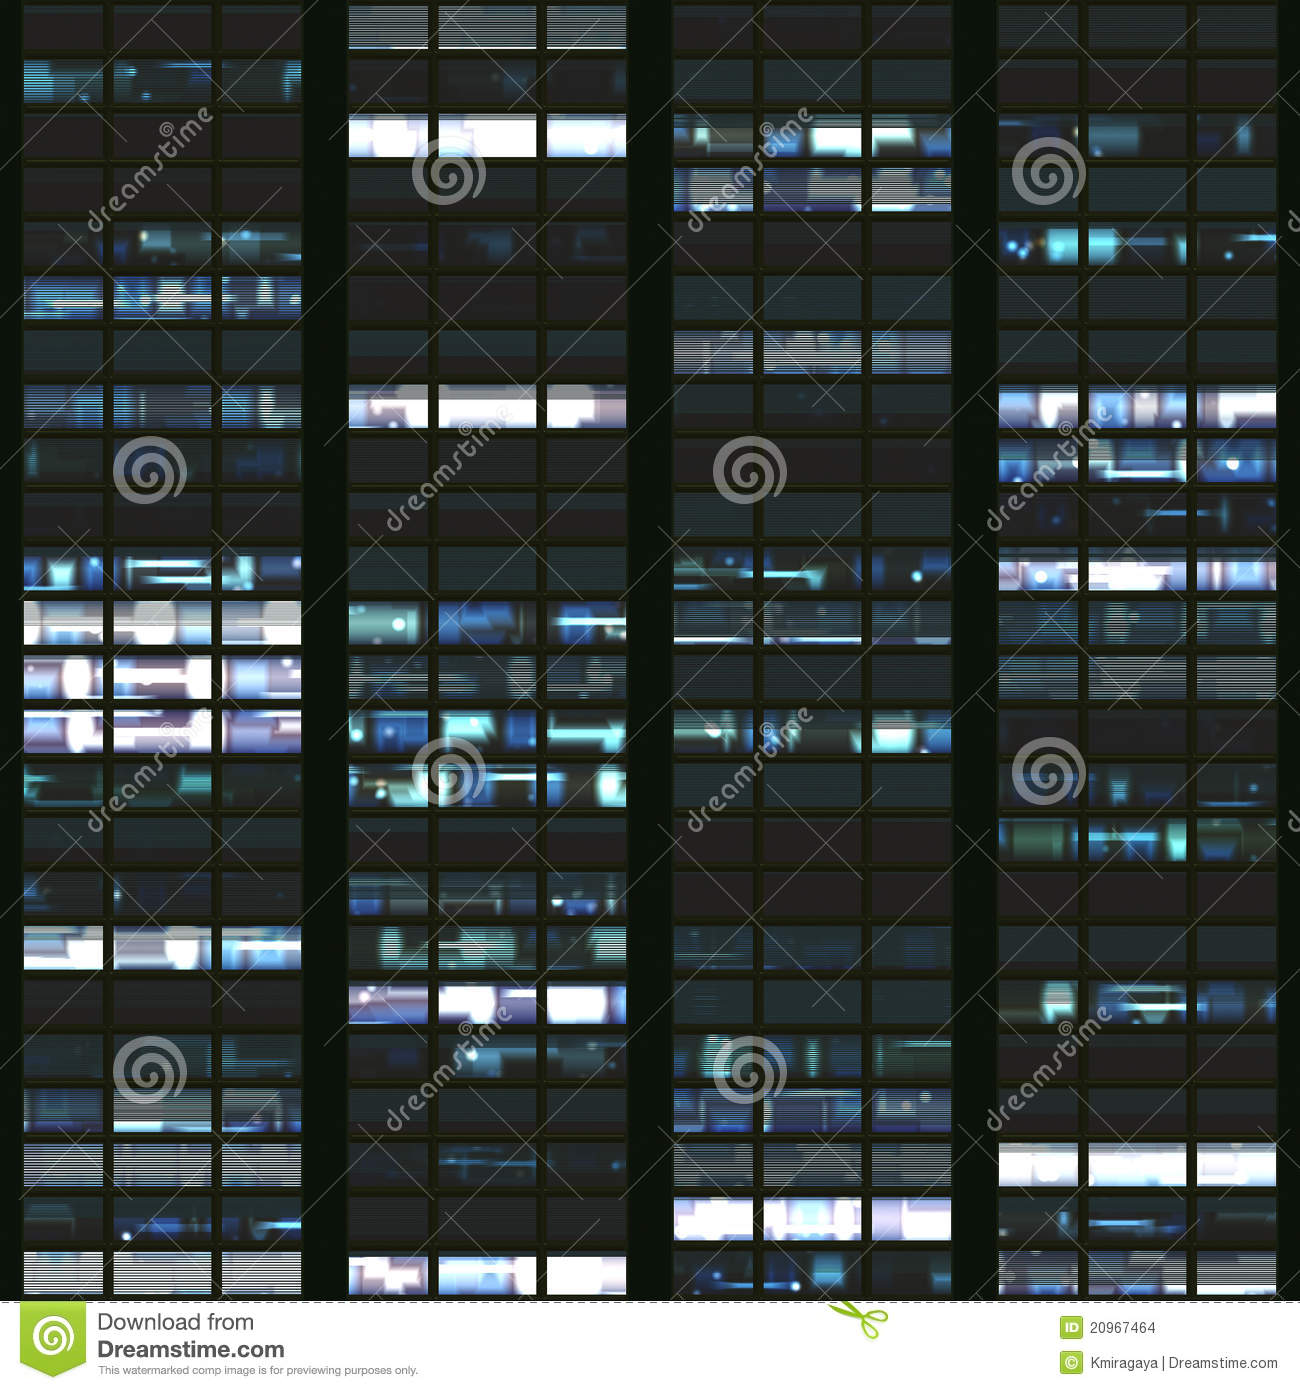 Seamless Texture Resembling Windows Of A Modern Skyscraper Illuminated At Night